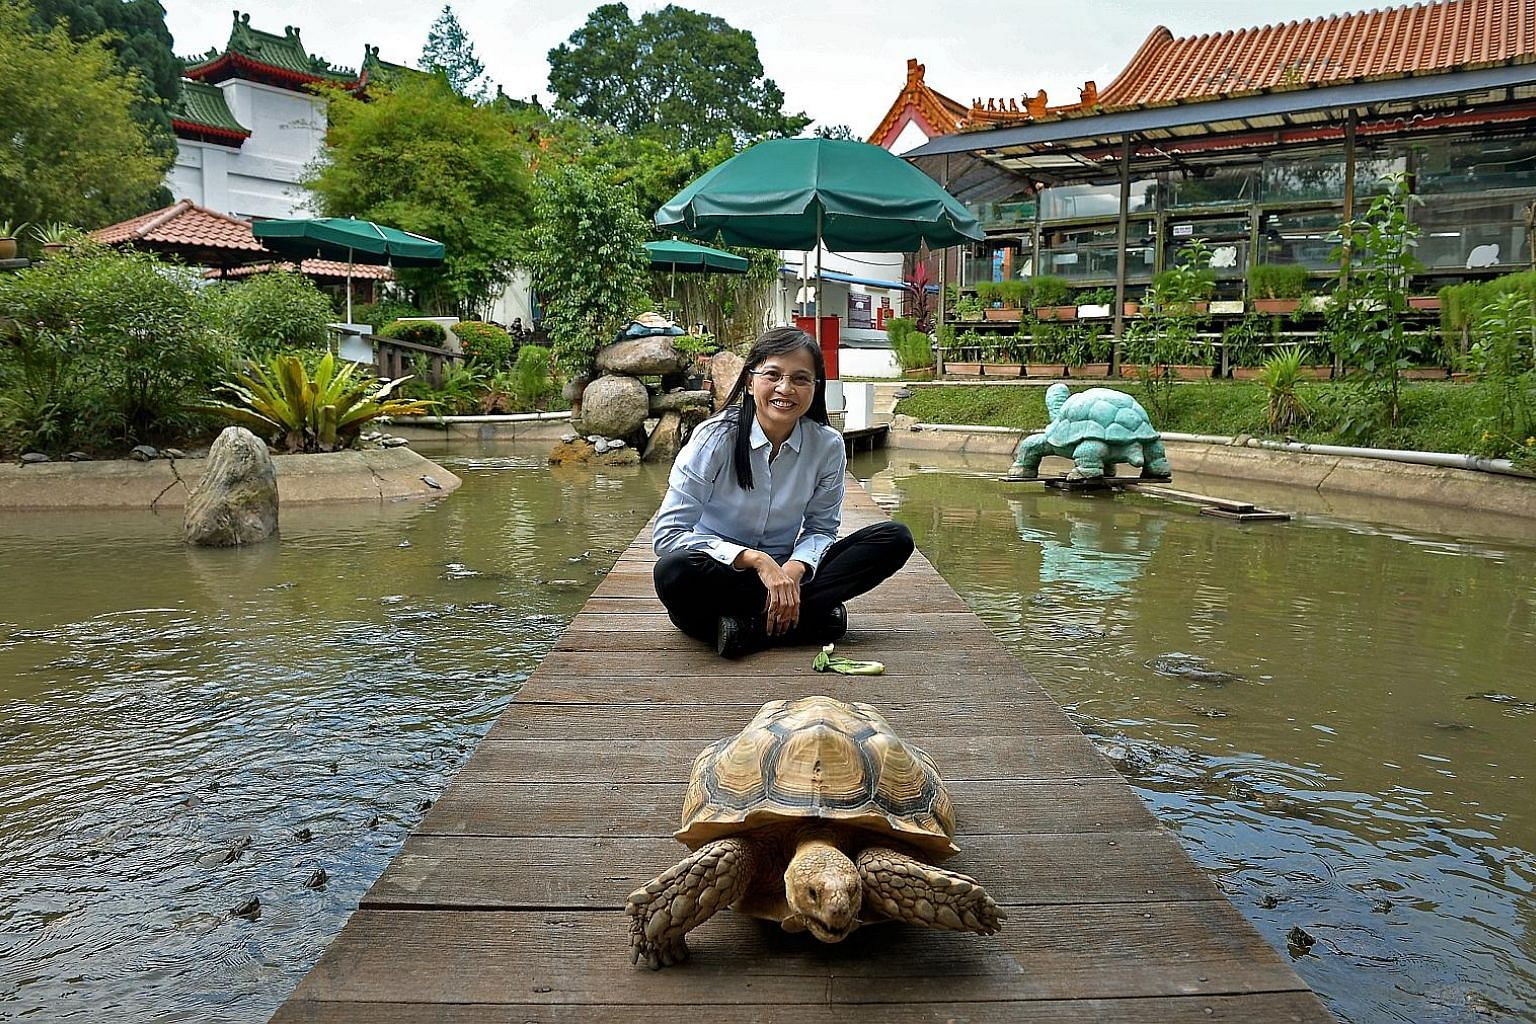 Ms Connie Tan looking on as an African spurred tortoise roams at the Live Turtle and Tortoise museum located in the Chinese Garden. She started the museum with her late father in 2001 to give children a chance to learn about the different species of